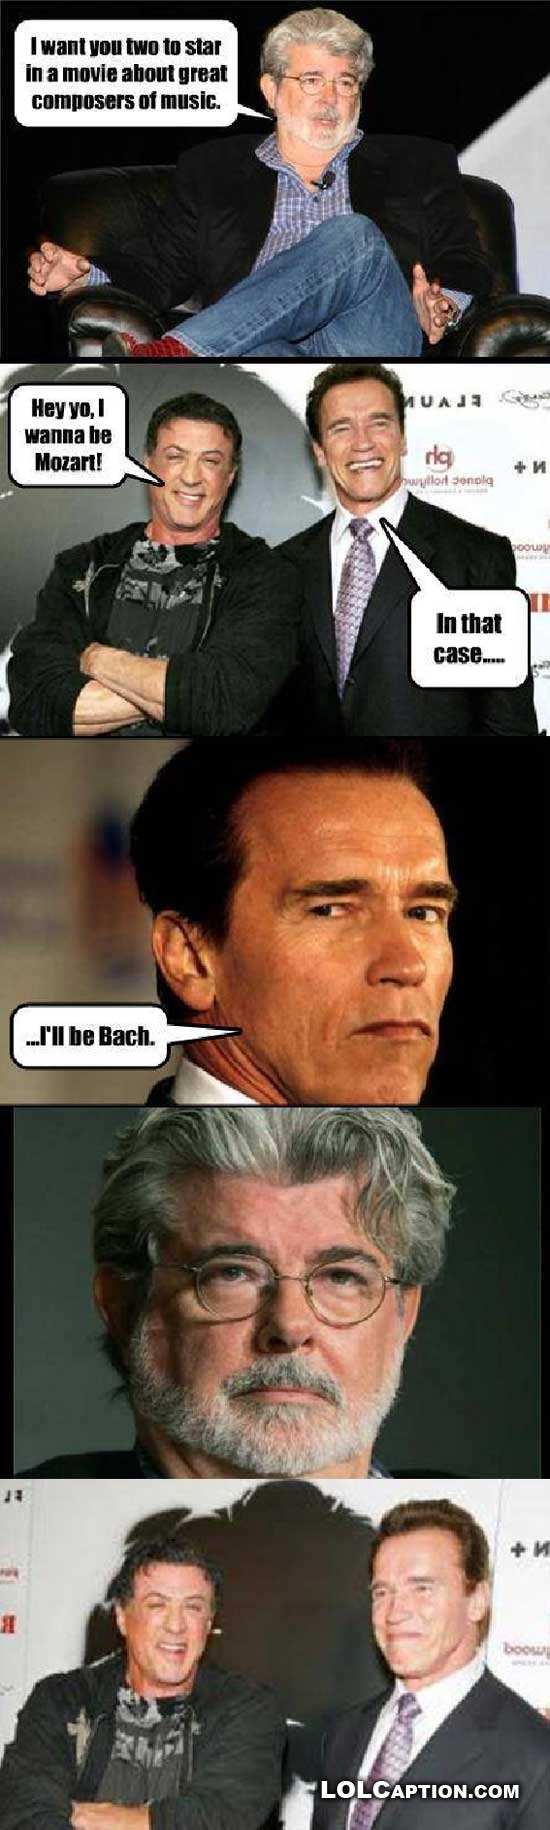 funny-arnold-comic-ill-be-bach-lol